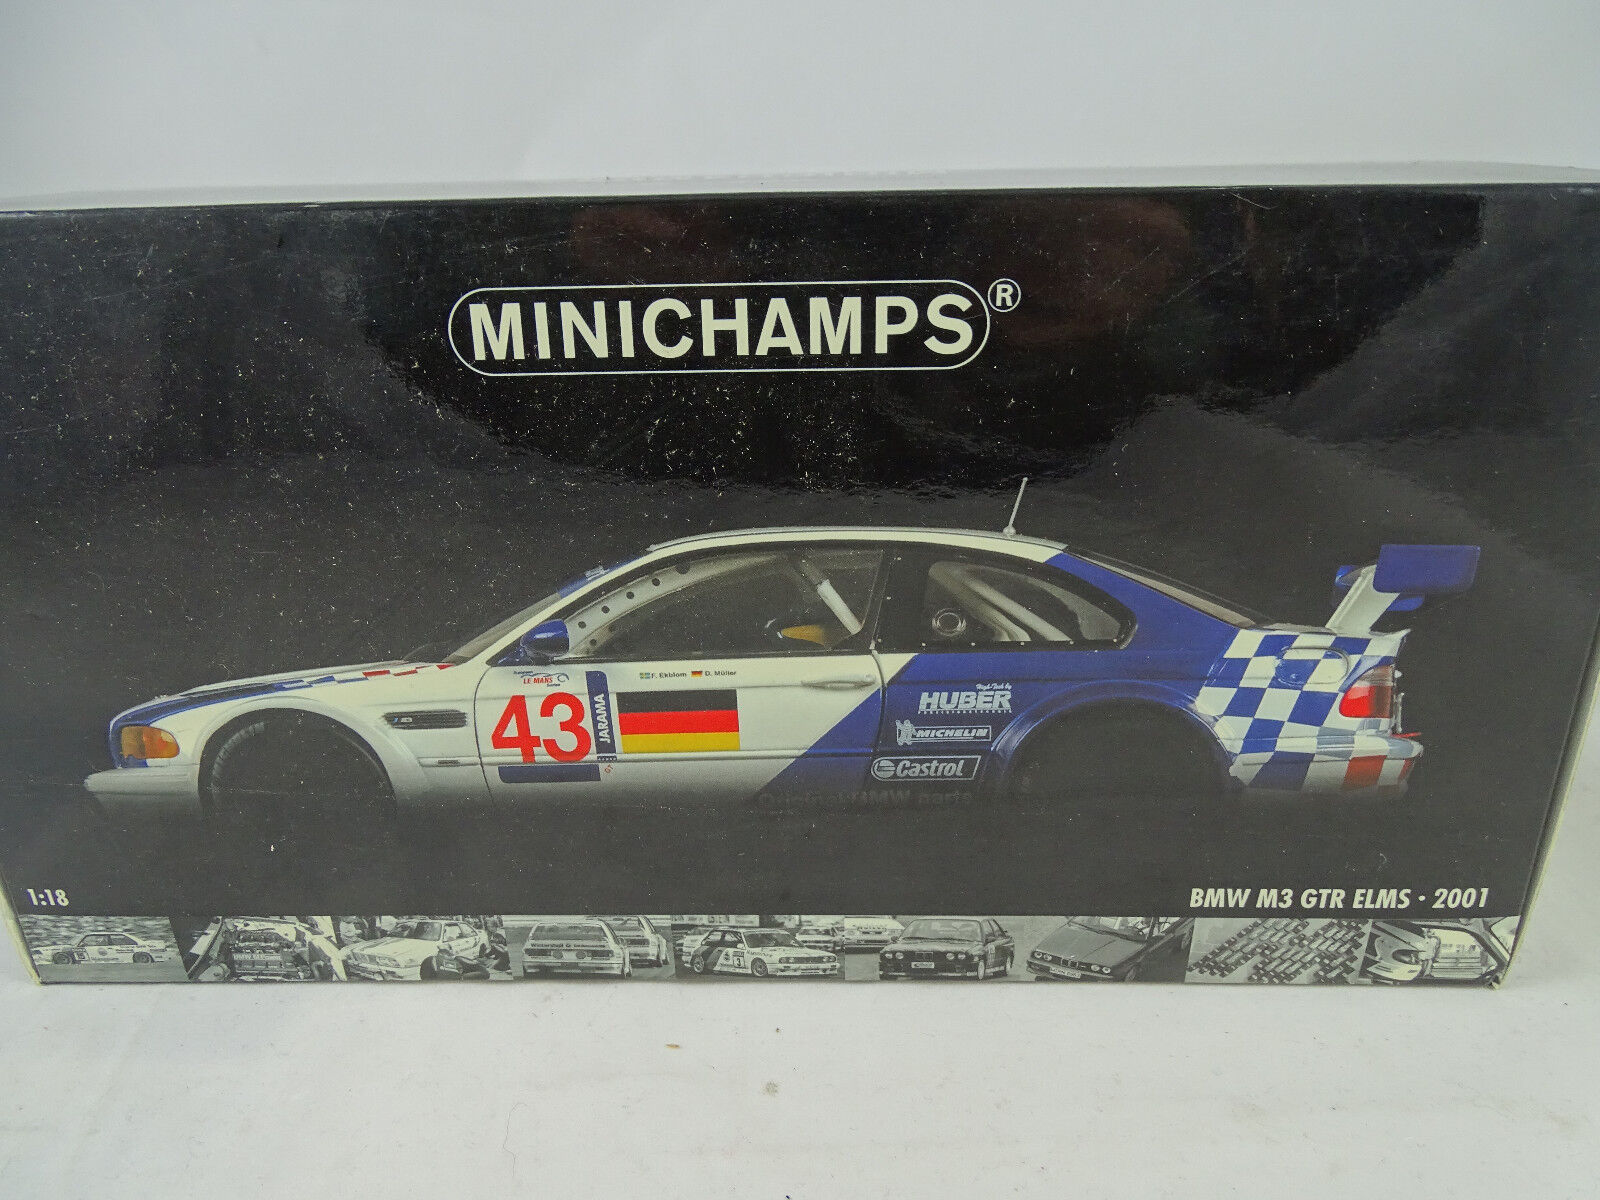 1 18 Minichamps  100012193 BMW M3 GTR ELMS Jarama 2001 Winners  43 Rarity NEW